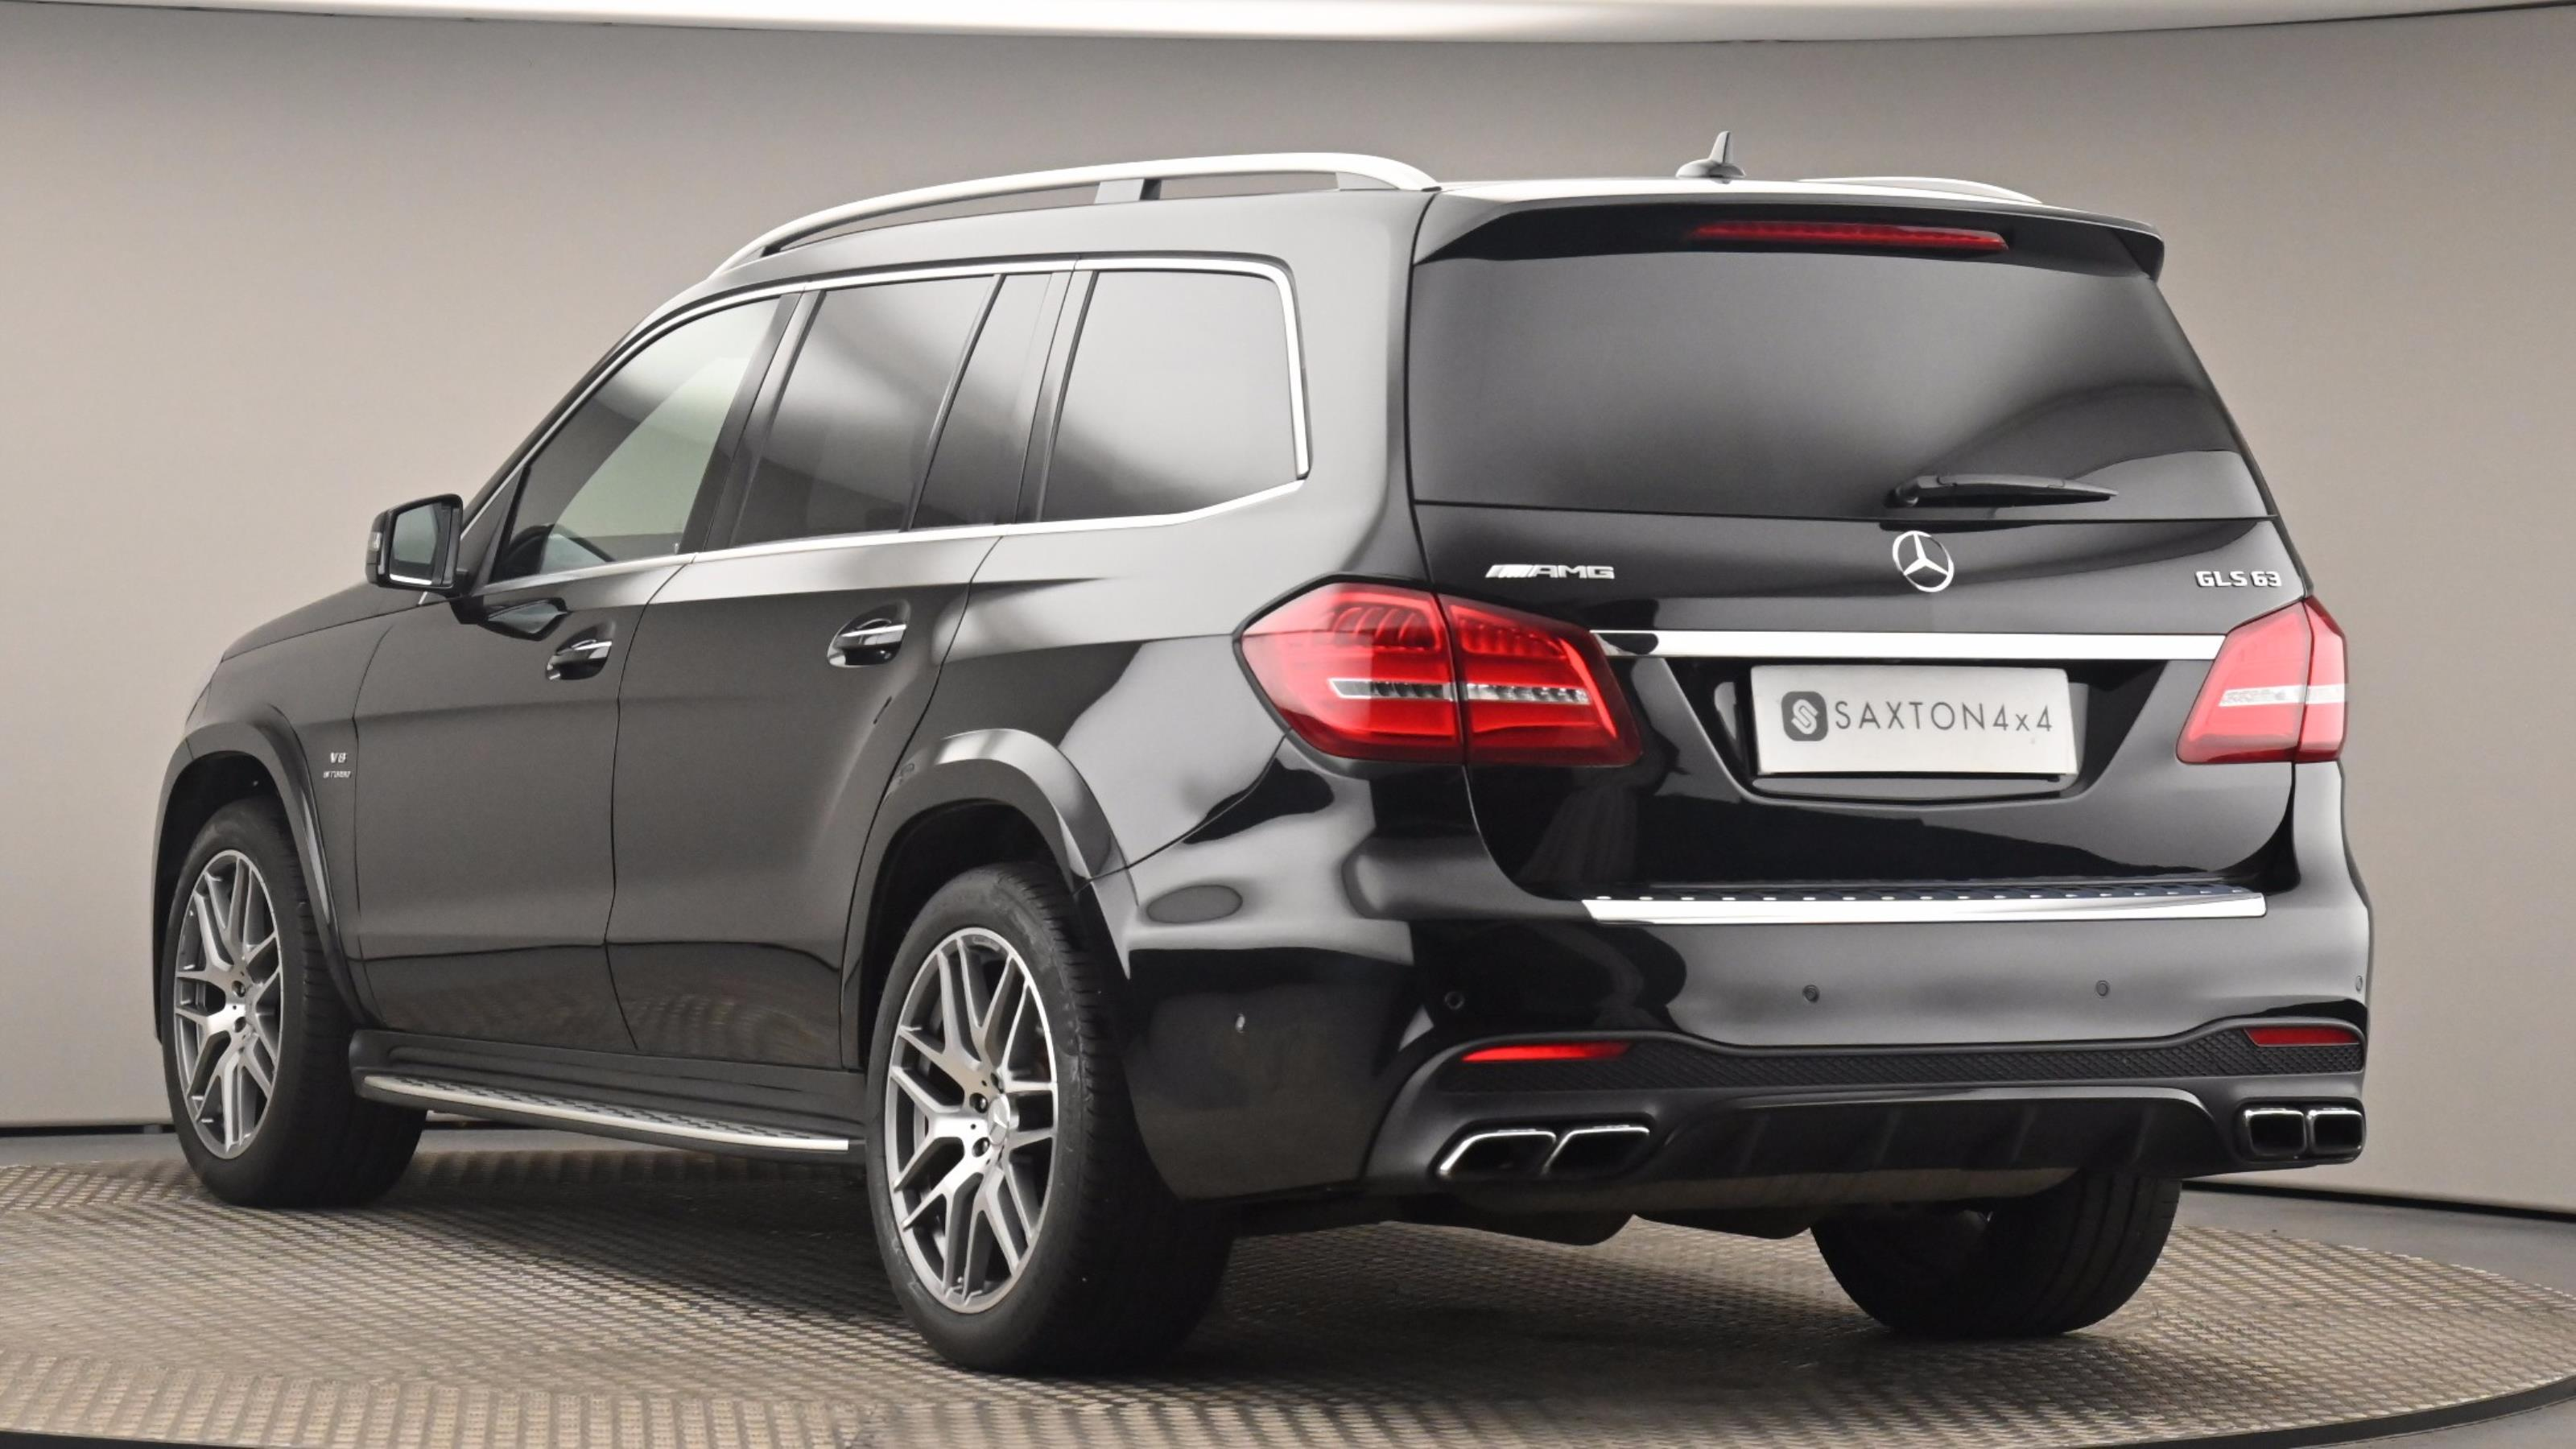 Used 2018 Mercedes-Benz GLS GLS 63 4Matic 5dr 7G-Tronic BLACK at Saxton4x4